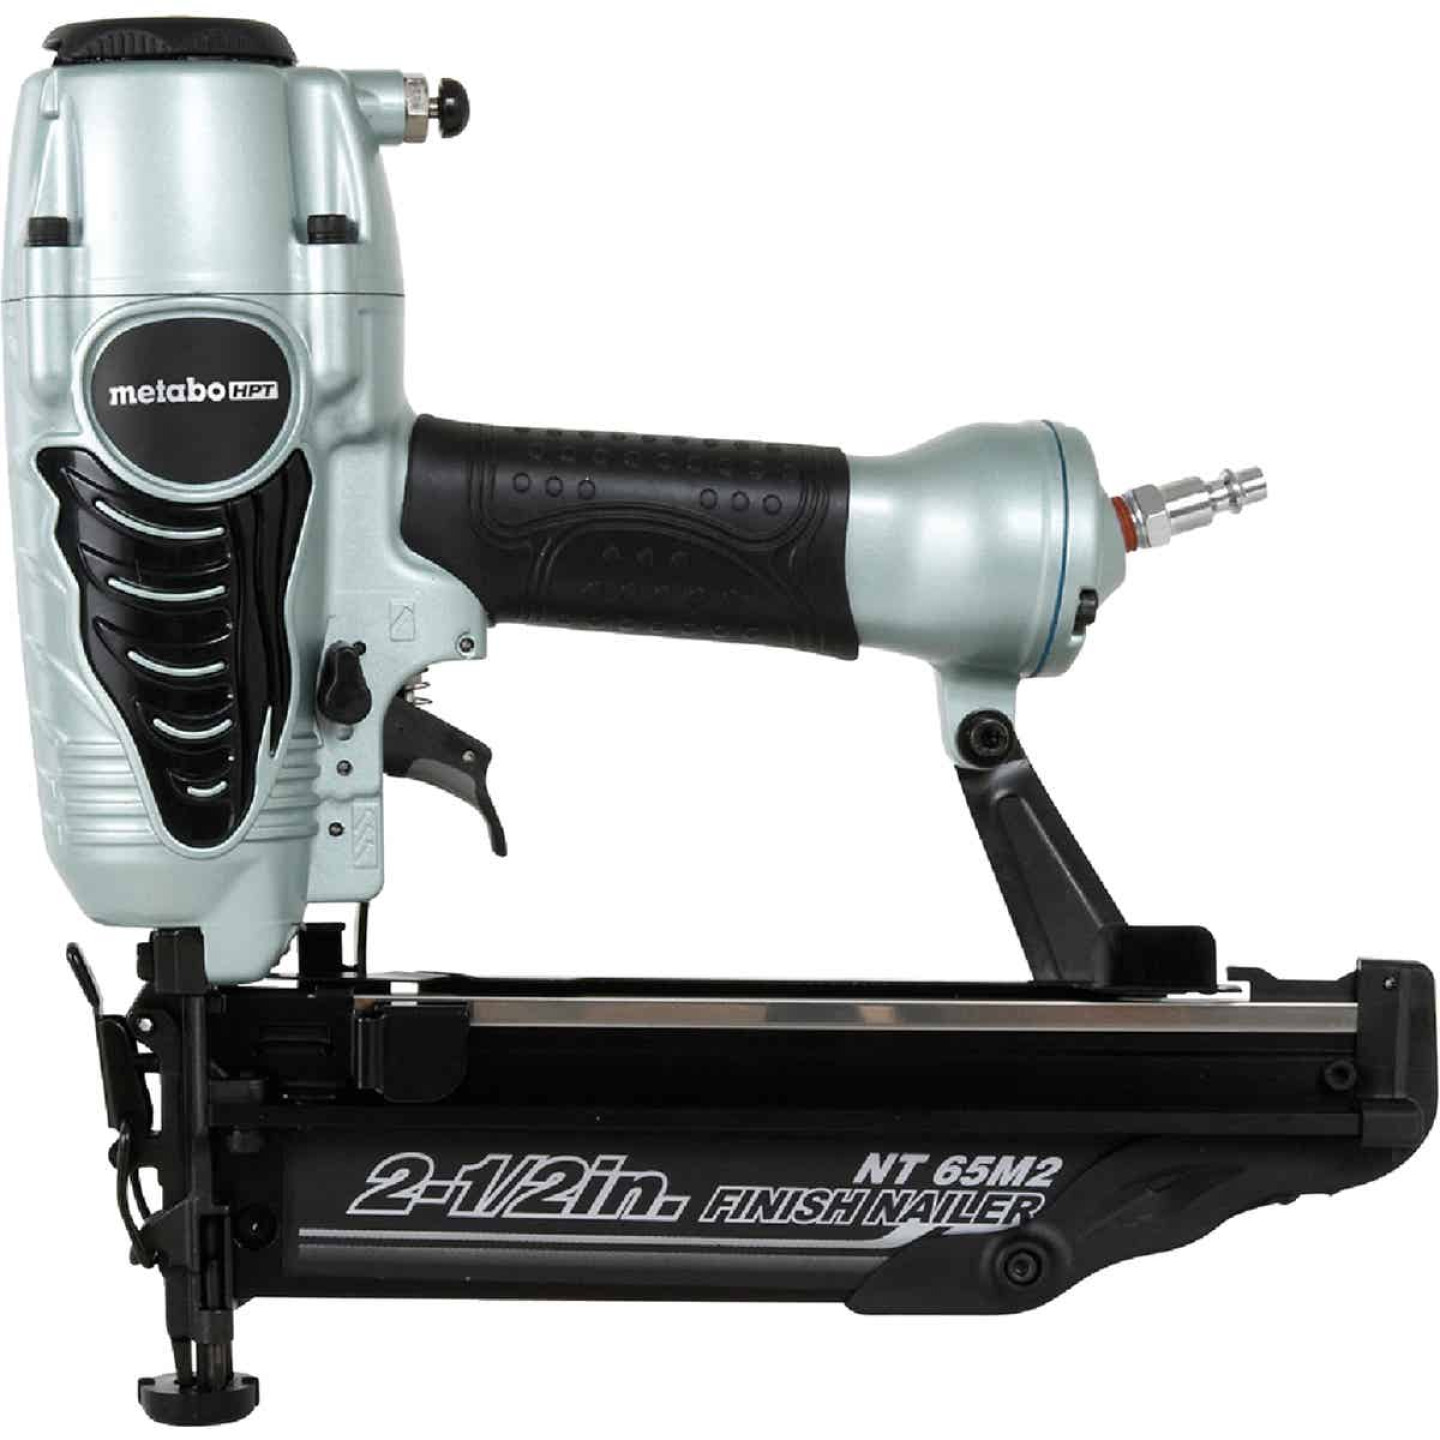 Metabo HPT 16-Gauge 2-1/2 In. Straight Finish Nailer with Air Duster Image 1